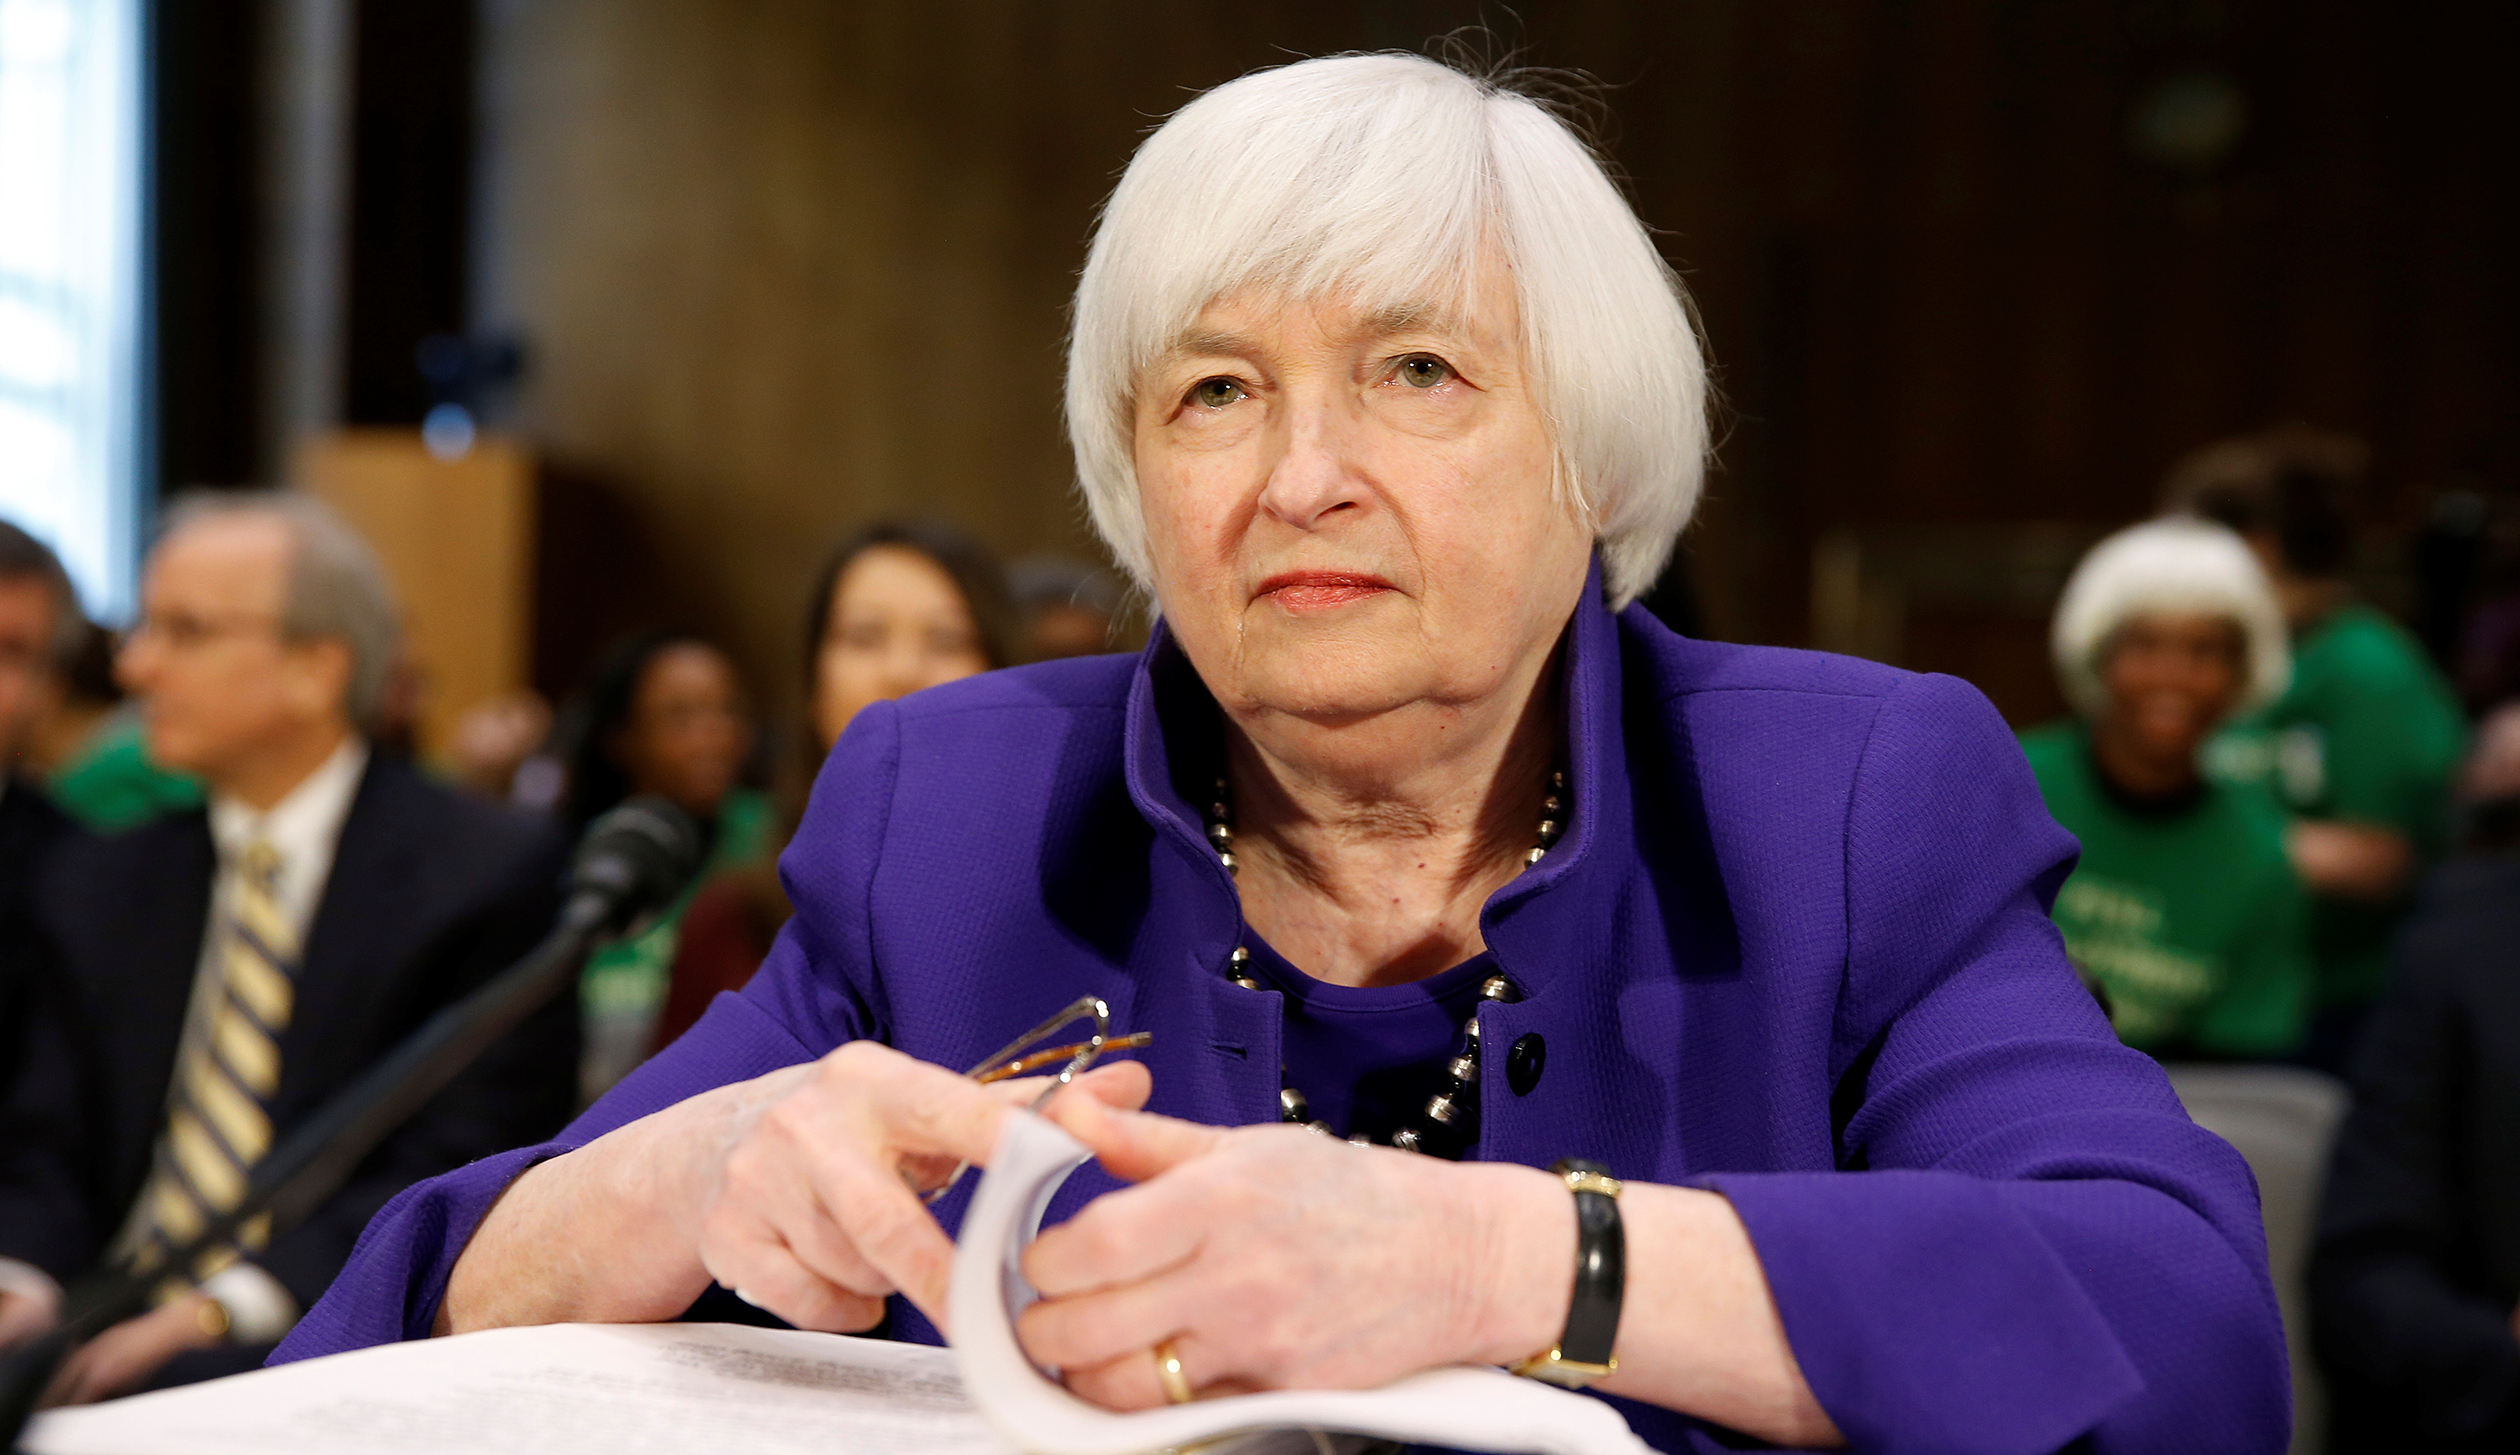 donald trump is open to renominating janet yellen to the fed fortune donald trump is open to renominating janet yellen to the fed fortune